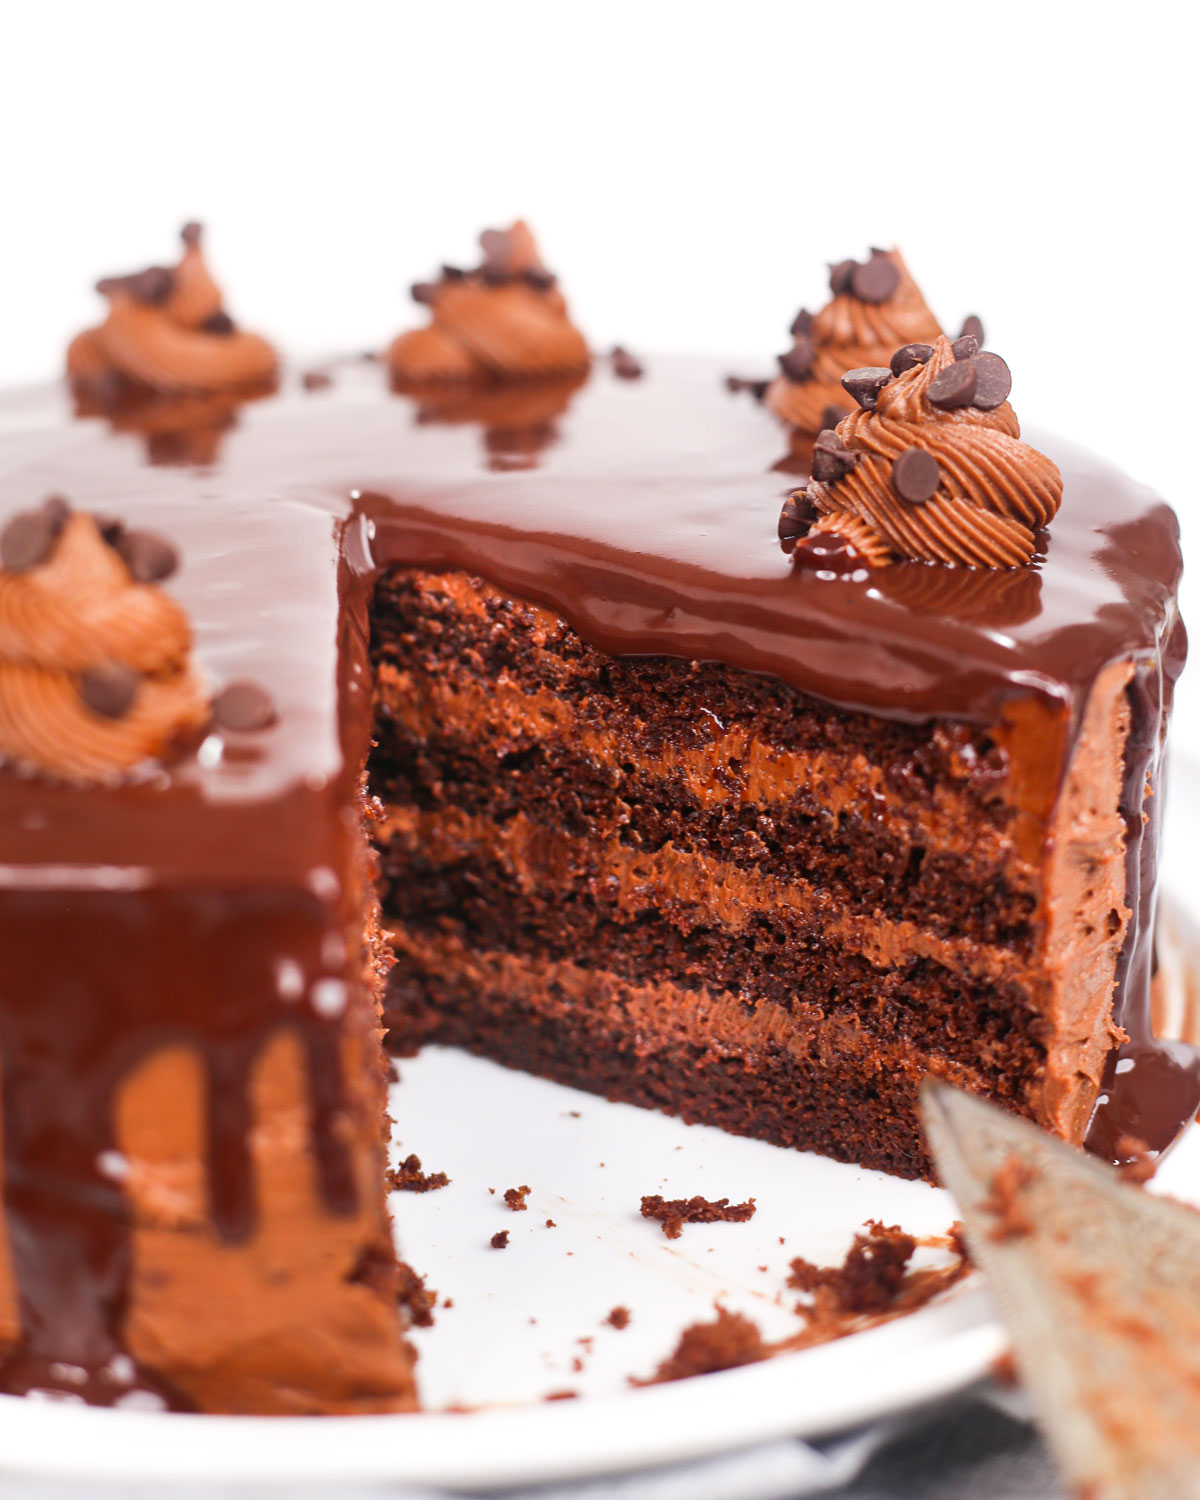 death by chocolate cake with a piece cut from it revealing the layers of buttercream inside